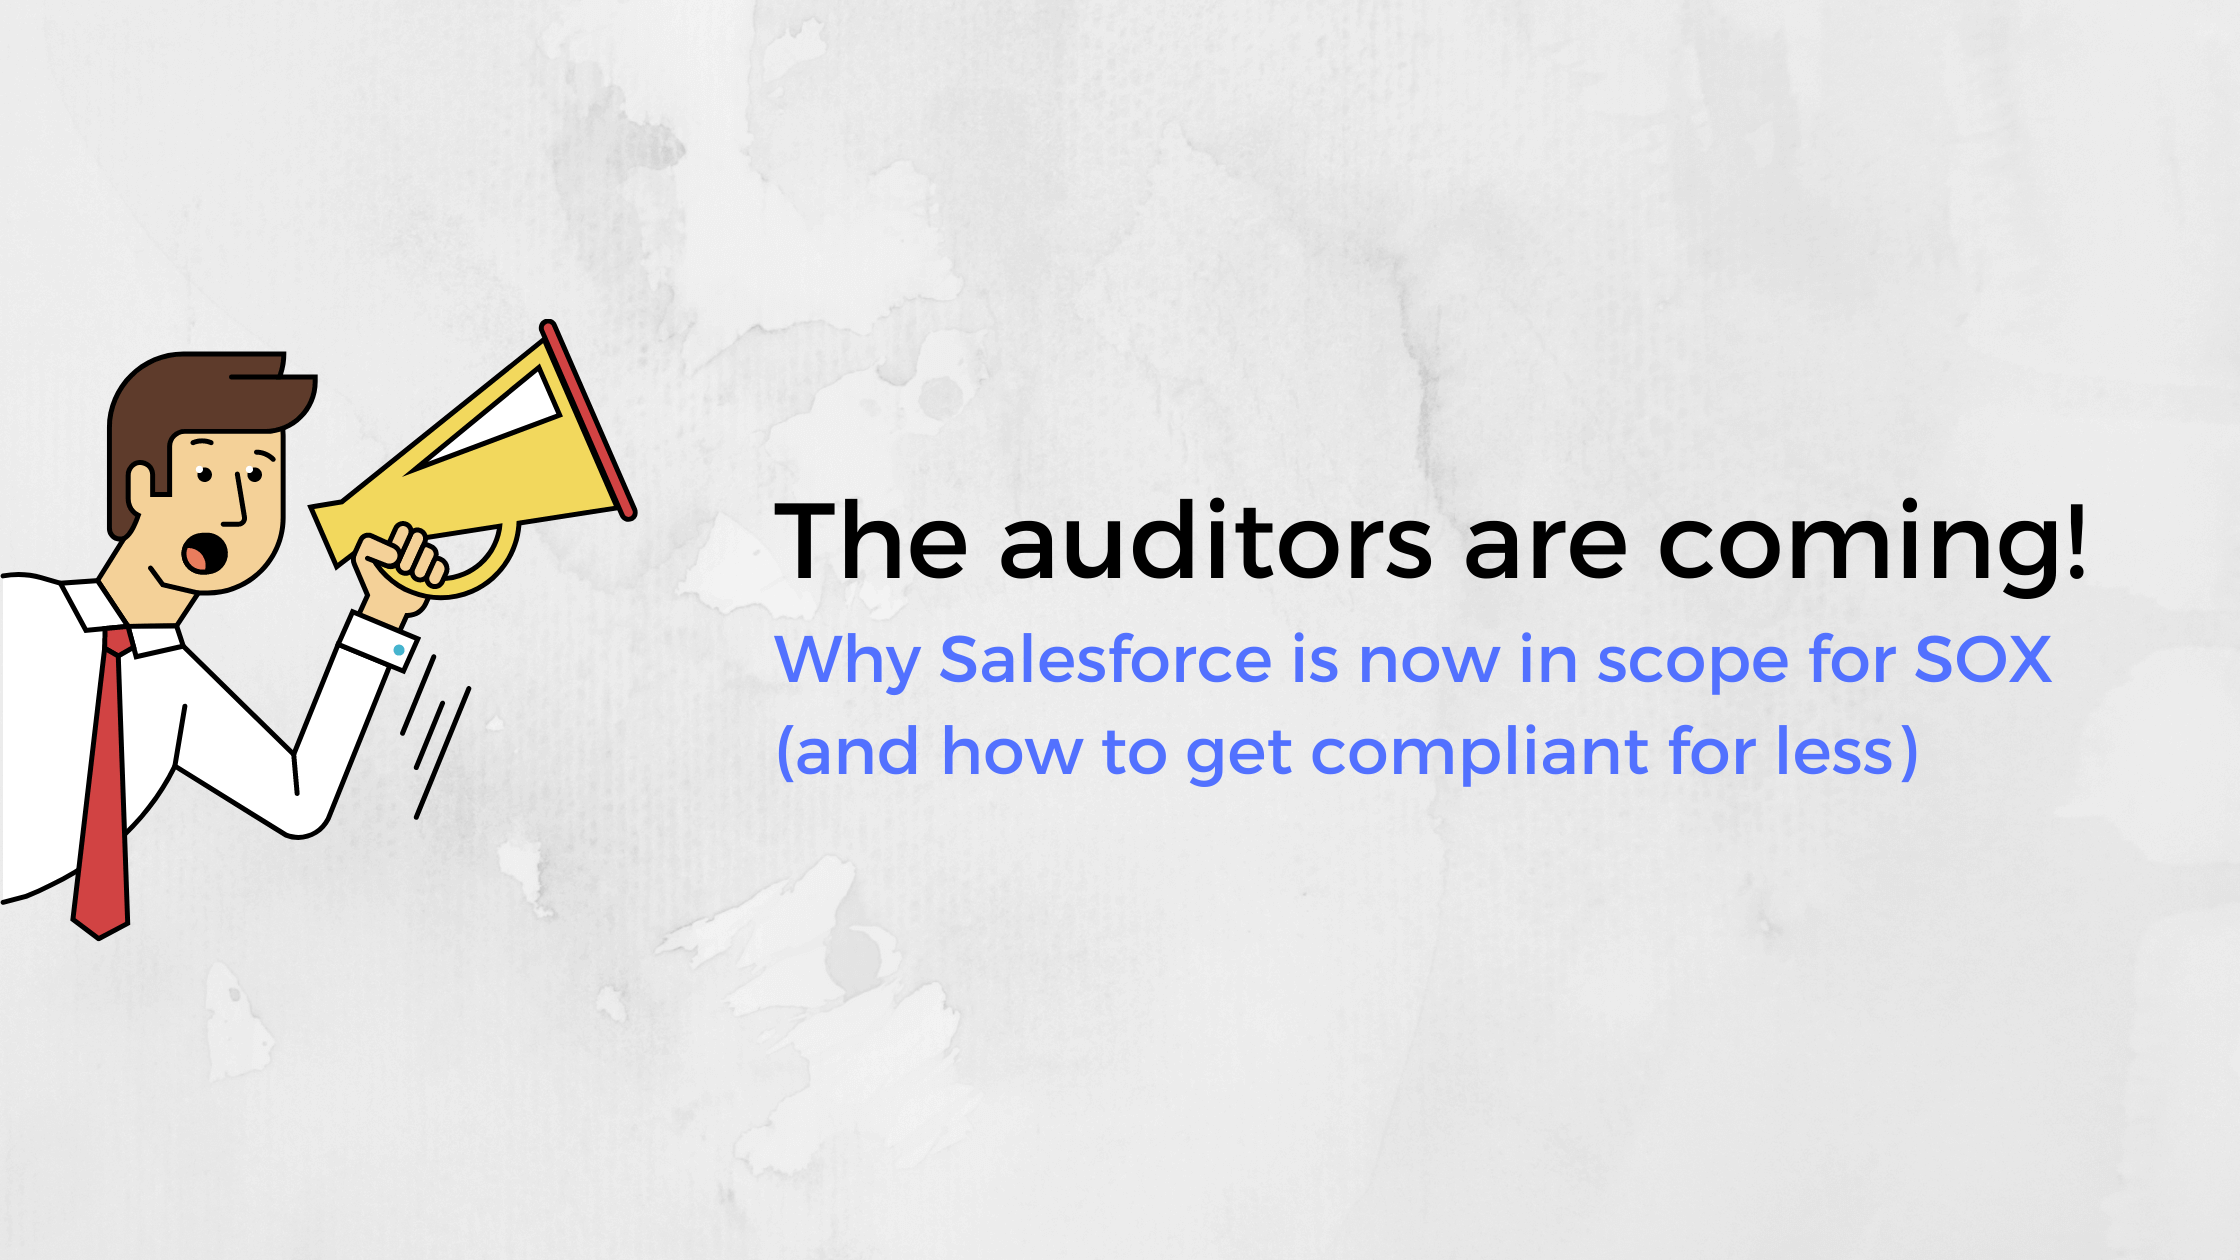 The auditors are coming! Why Salesforce is now in scope for SOX-1